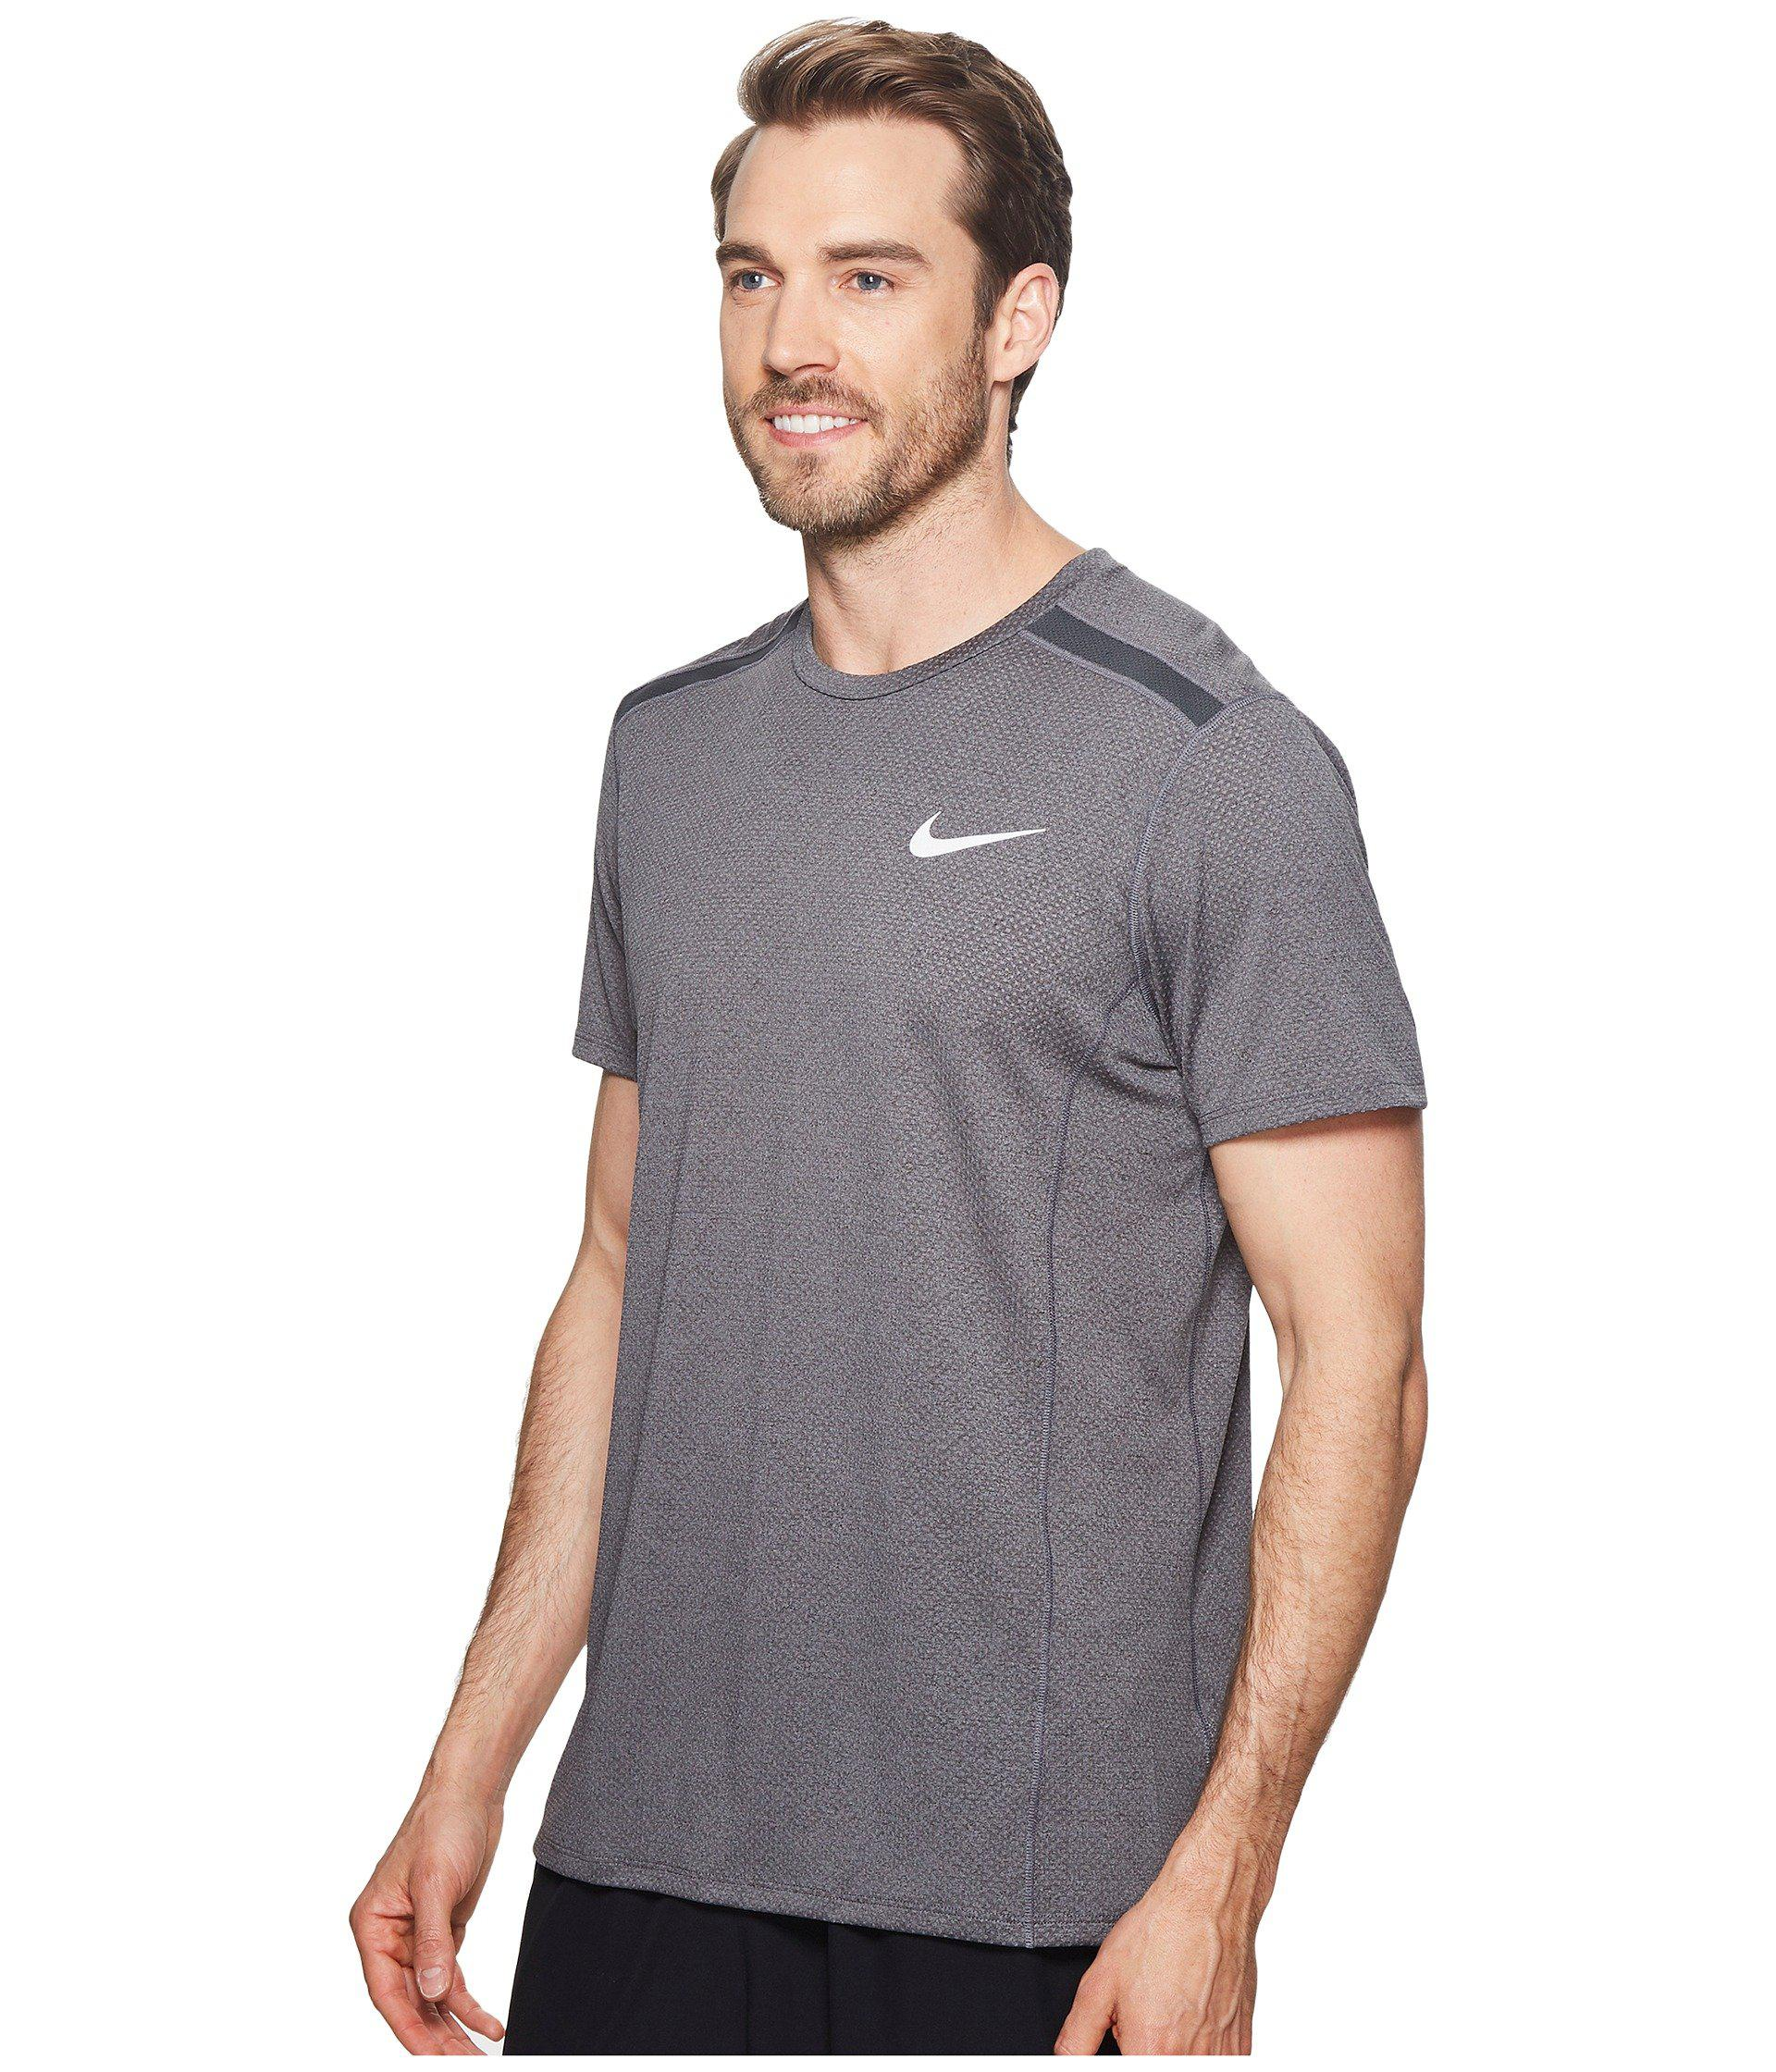 16bdb5c5ab0dc Lyst - Nike Cool Miler Short-sleeve Running Top in Gray for Men - Save 18%